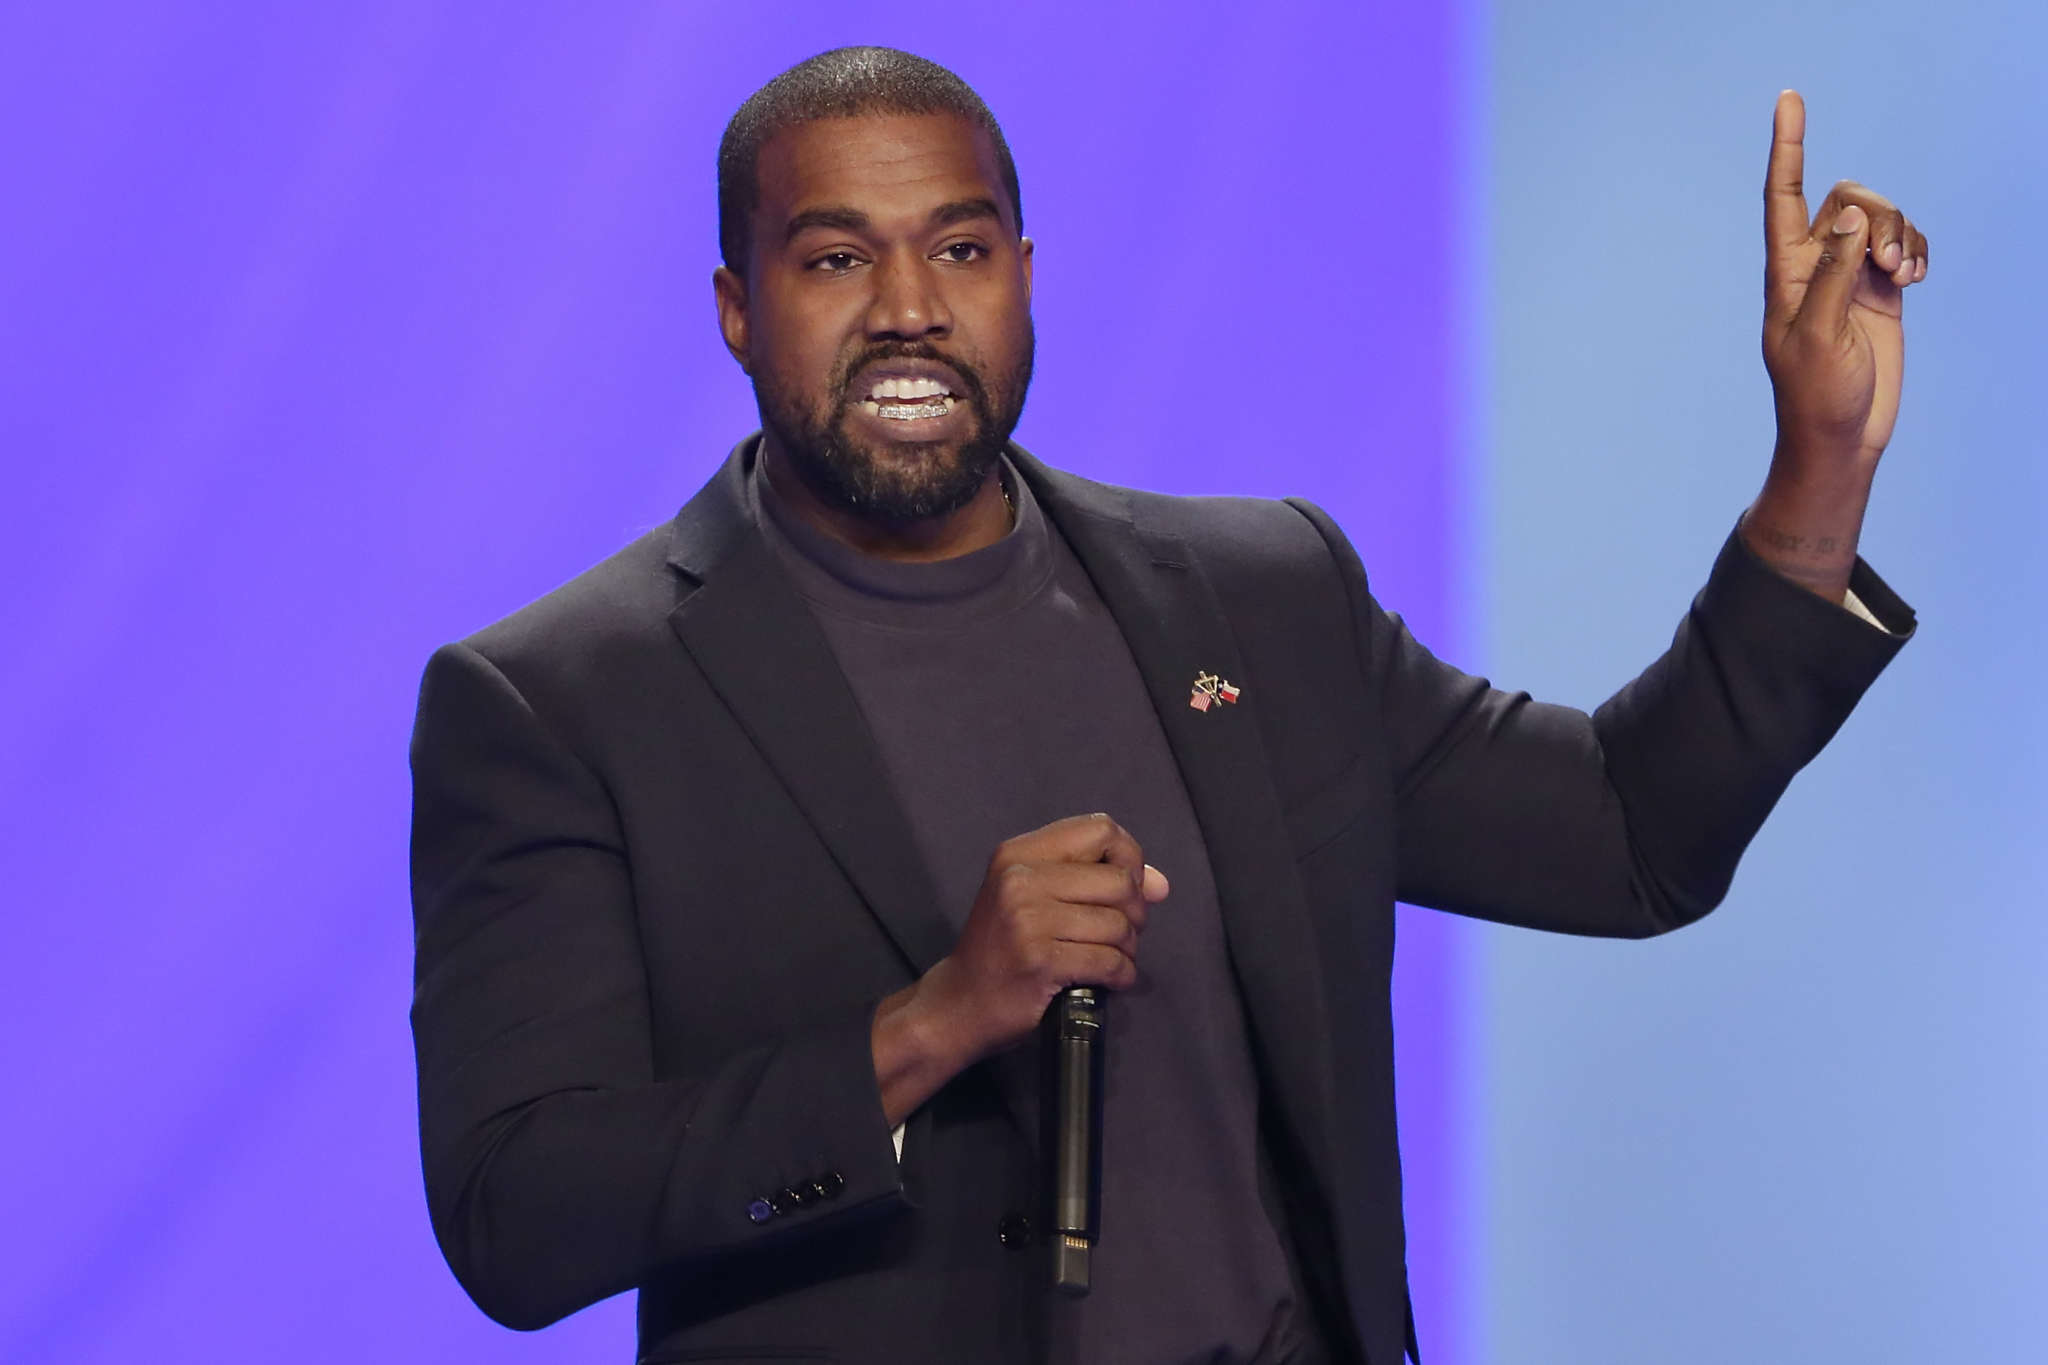 kanye-west-says-im-not-crazy-while-discussing-stigma-surrounding-mental-disorders